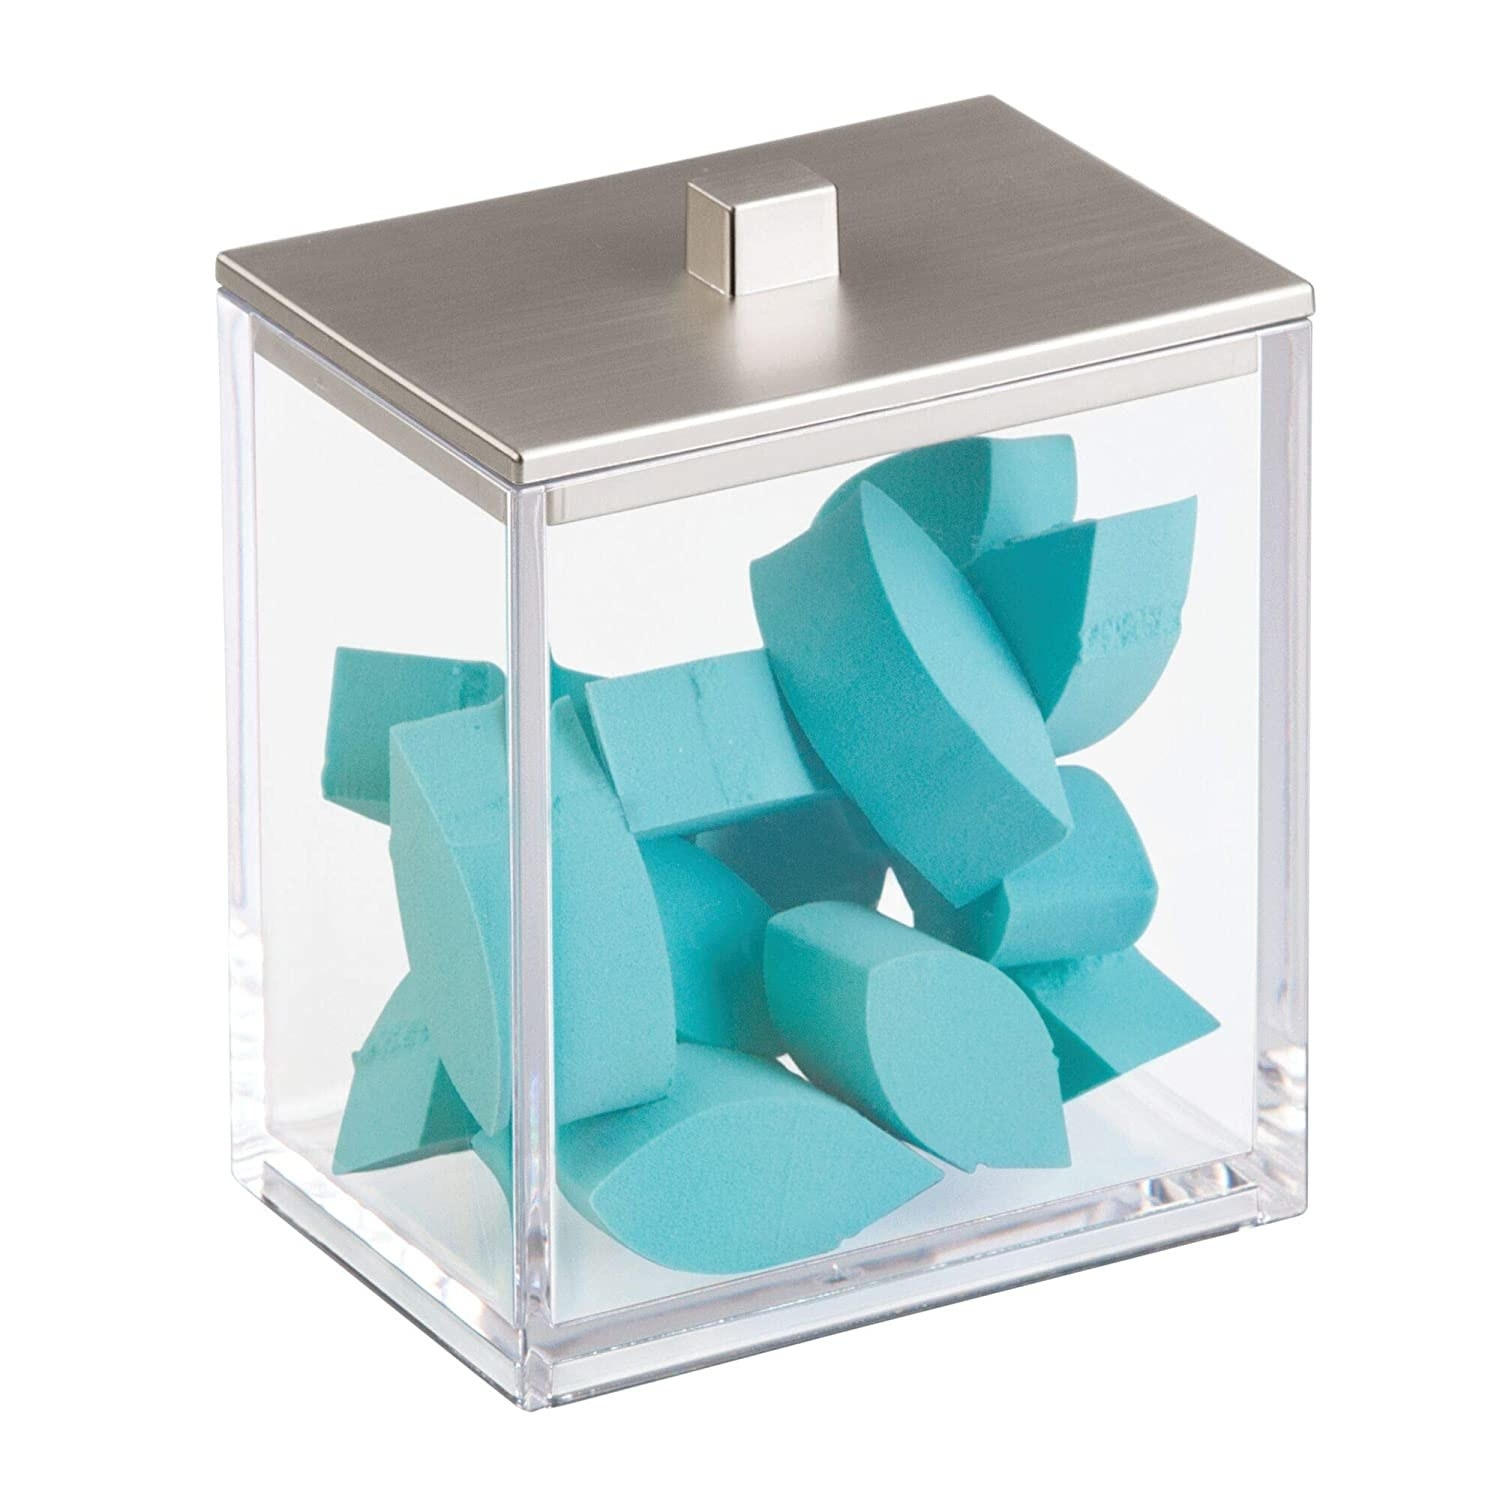 A clear canister with makeup sponges inside having a silver lid and trimmings